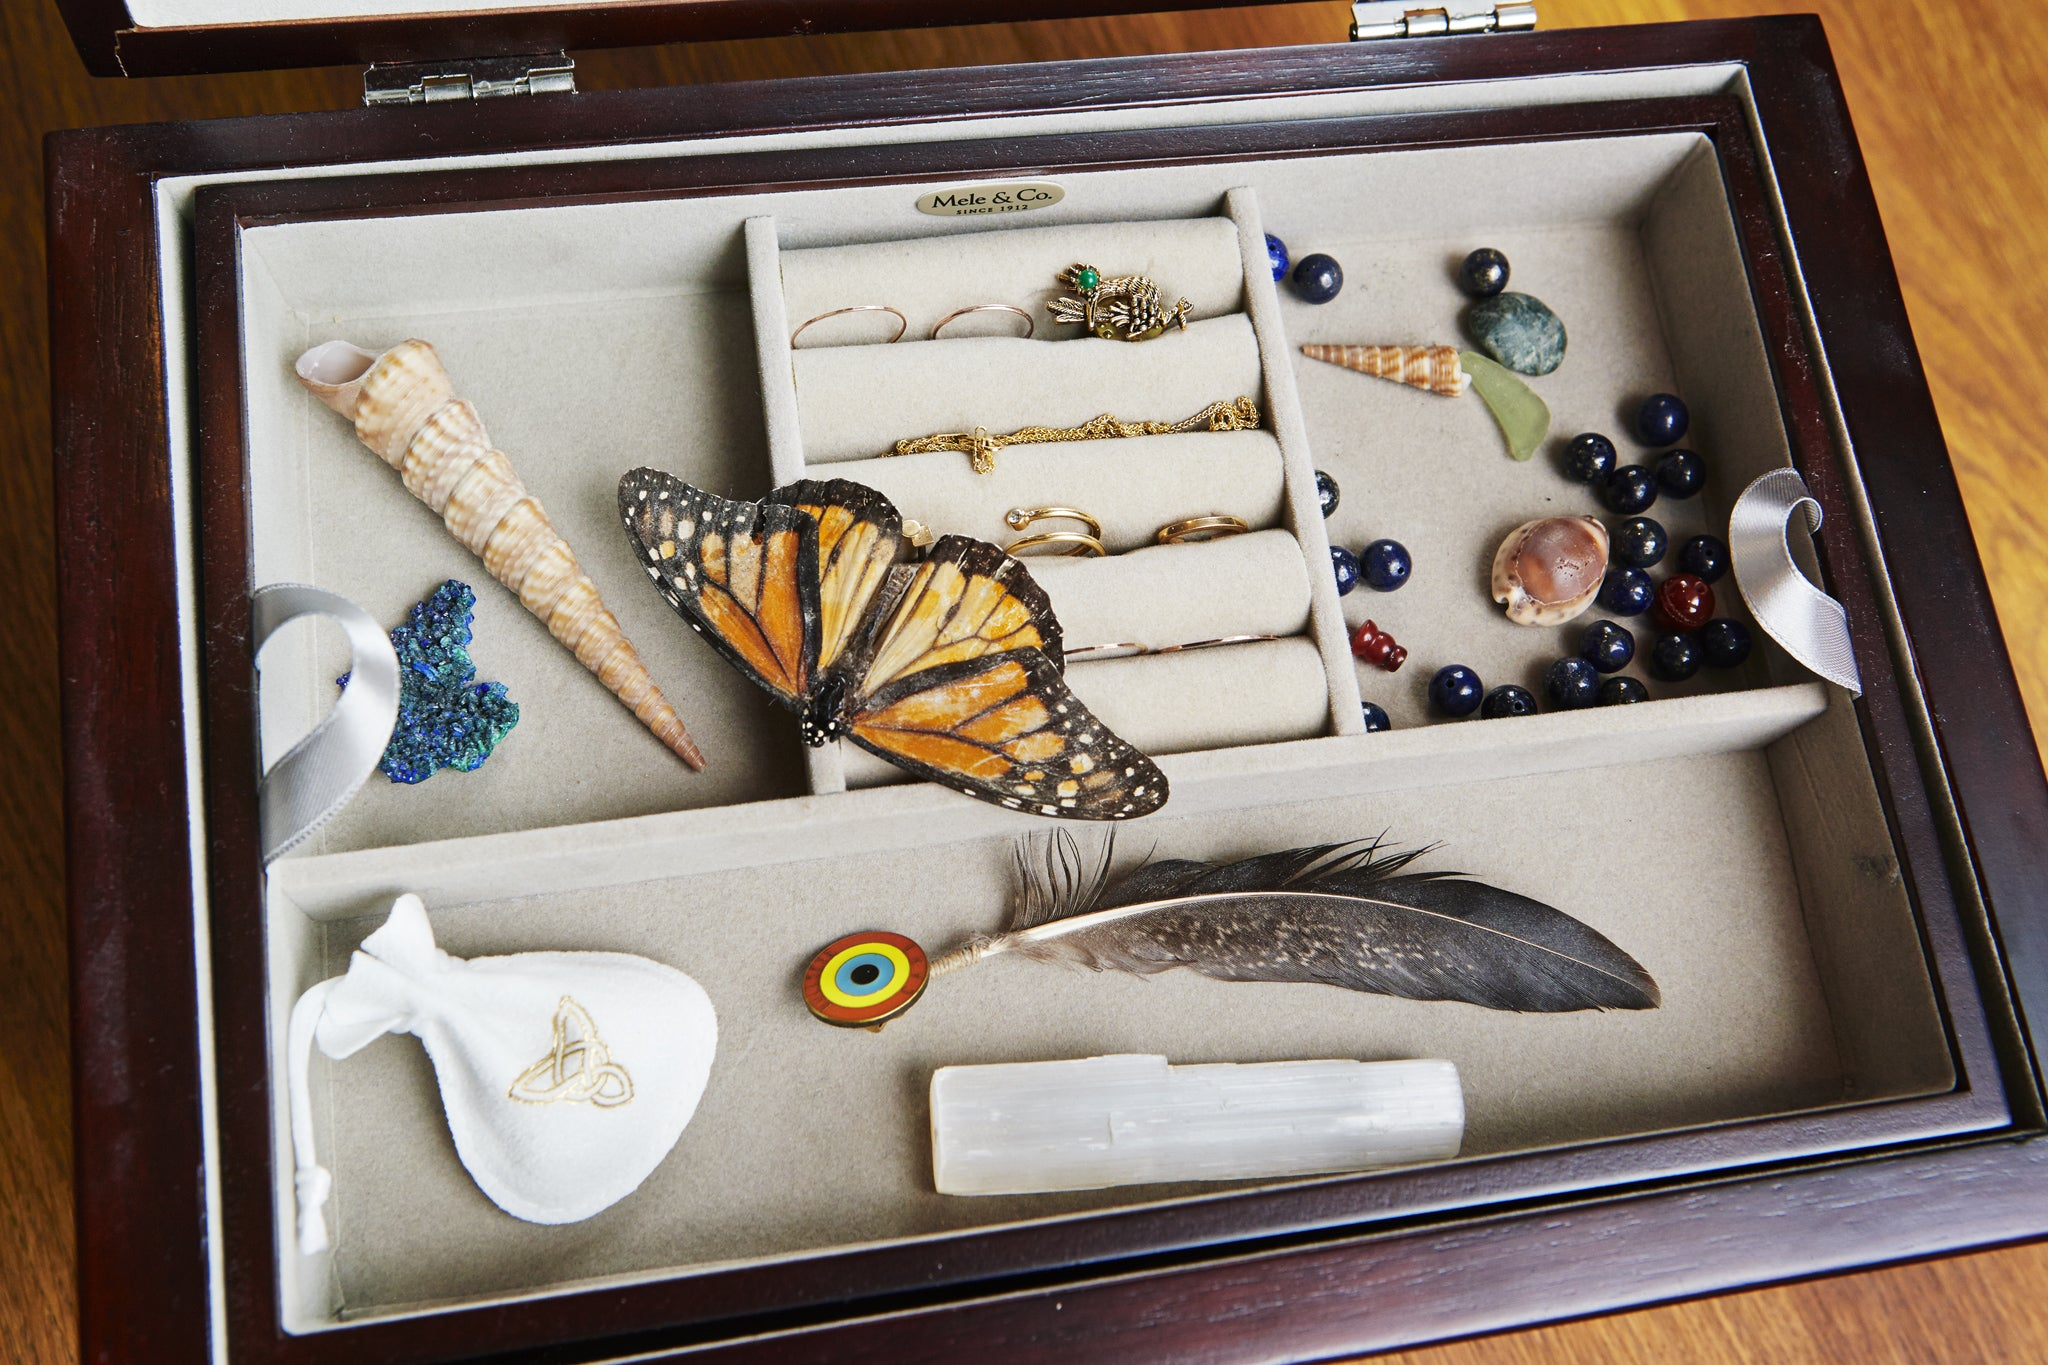 Model Renee Peters' jewelry box with monarch butterfly, Shiffon pouch and Duet Pinky Ring, shells, beads, a feather, and assorted other jewelry